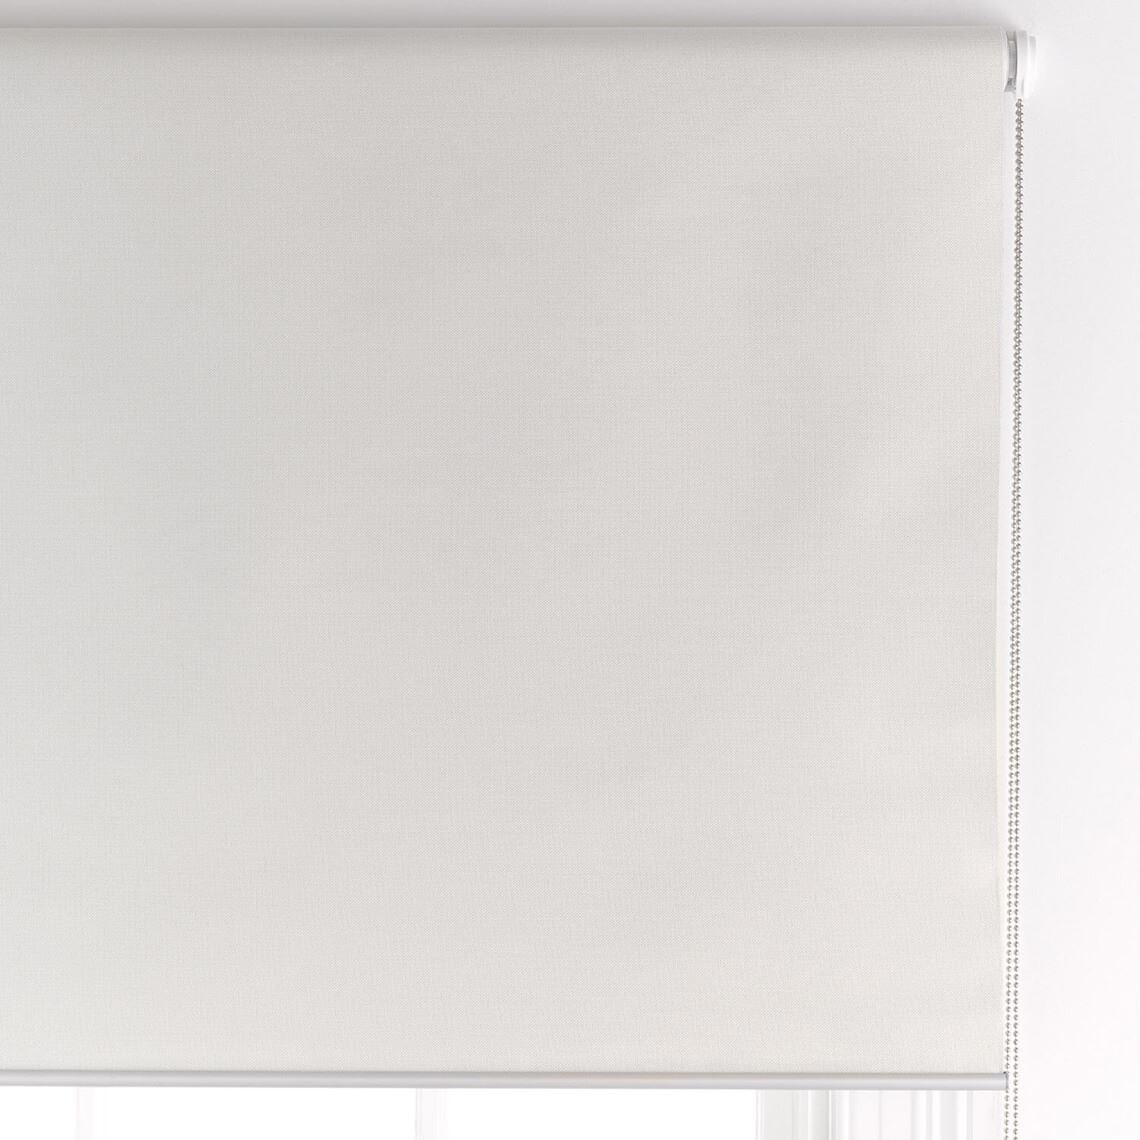 Milton Blockout Roller Blind Size W 90cm x D 1cm x H 210cm in Ivory 100% Polyester Freedom by Freedom, a Curtains for sale on Style Sourcebook